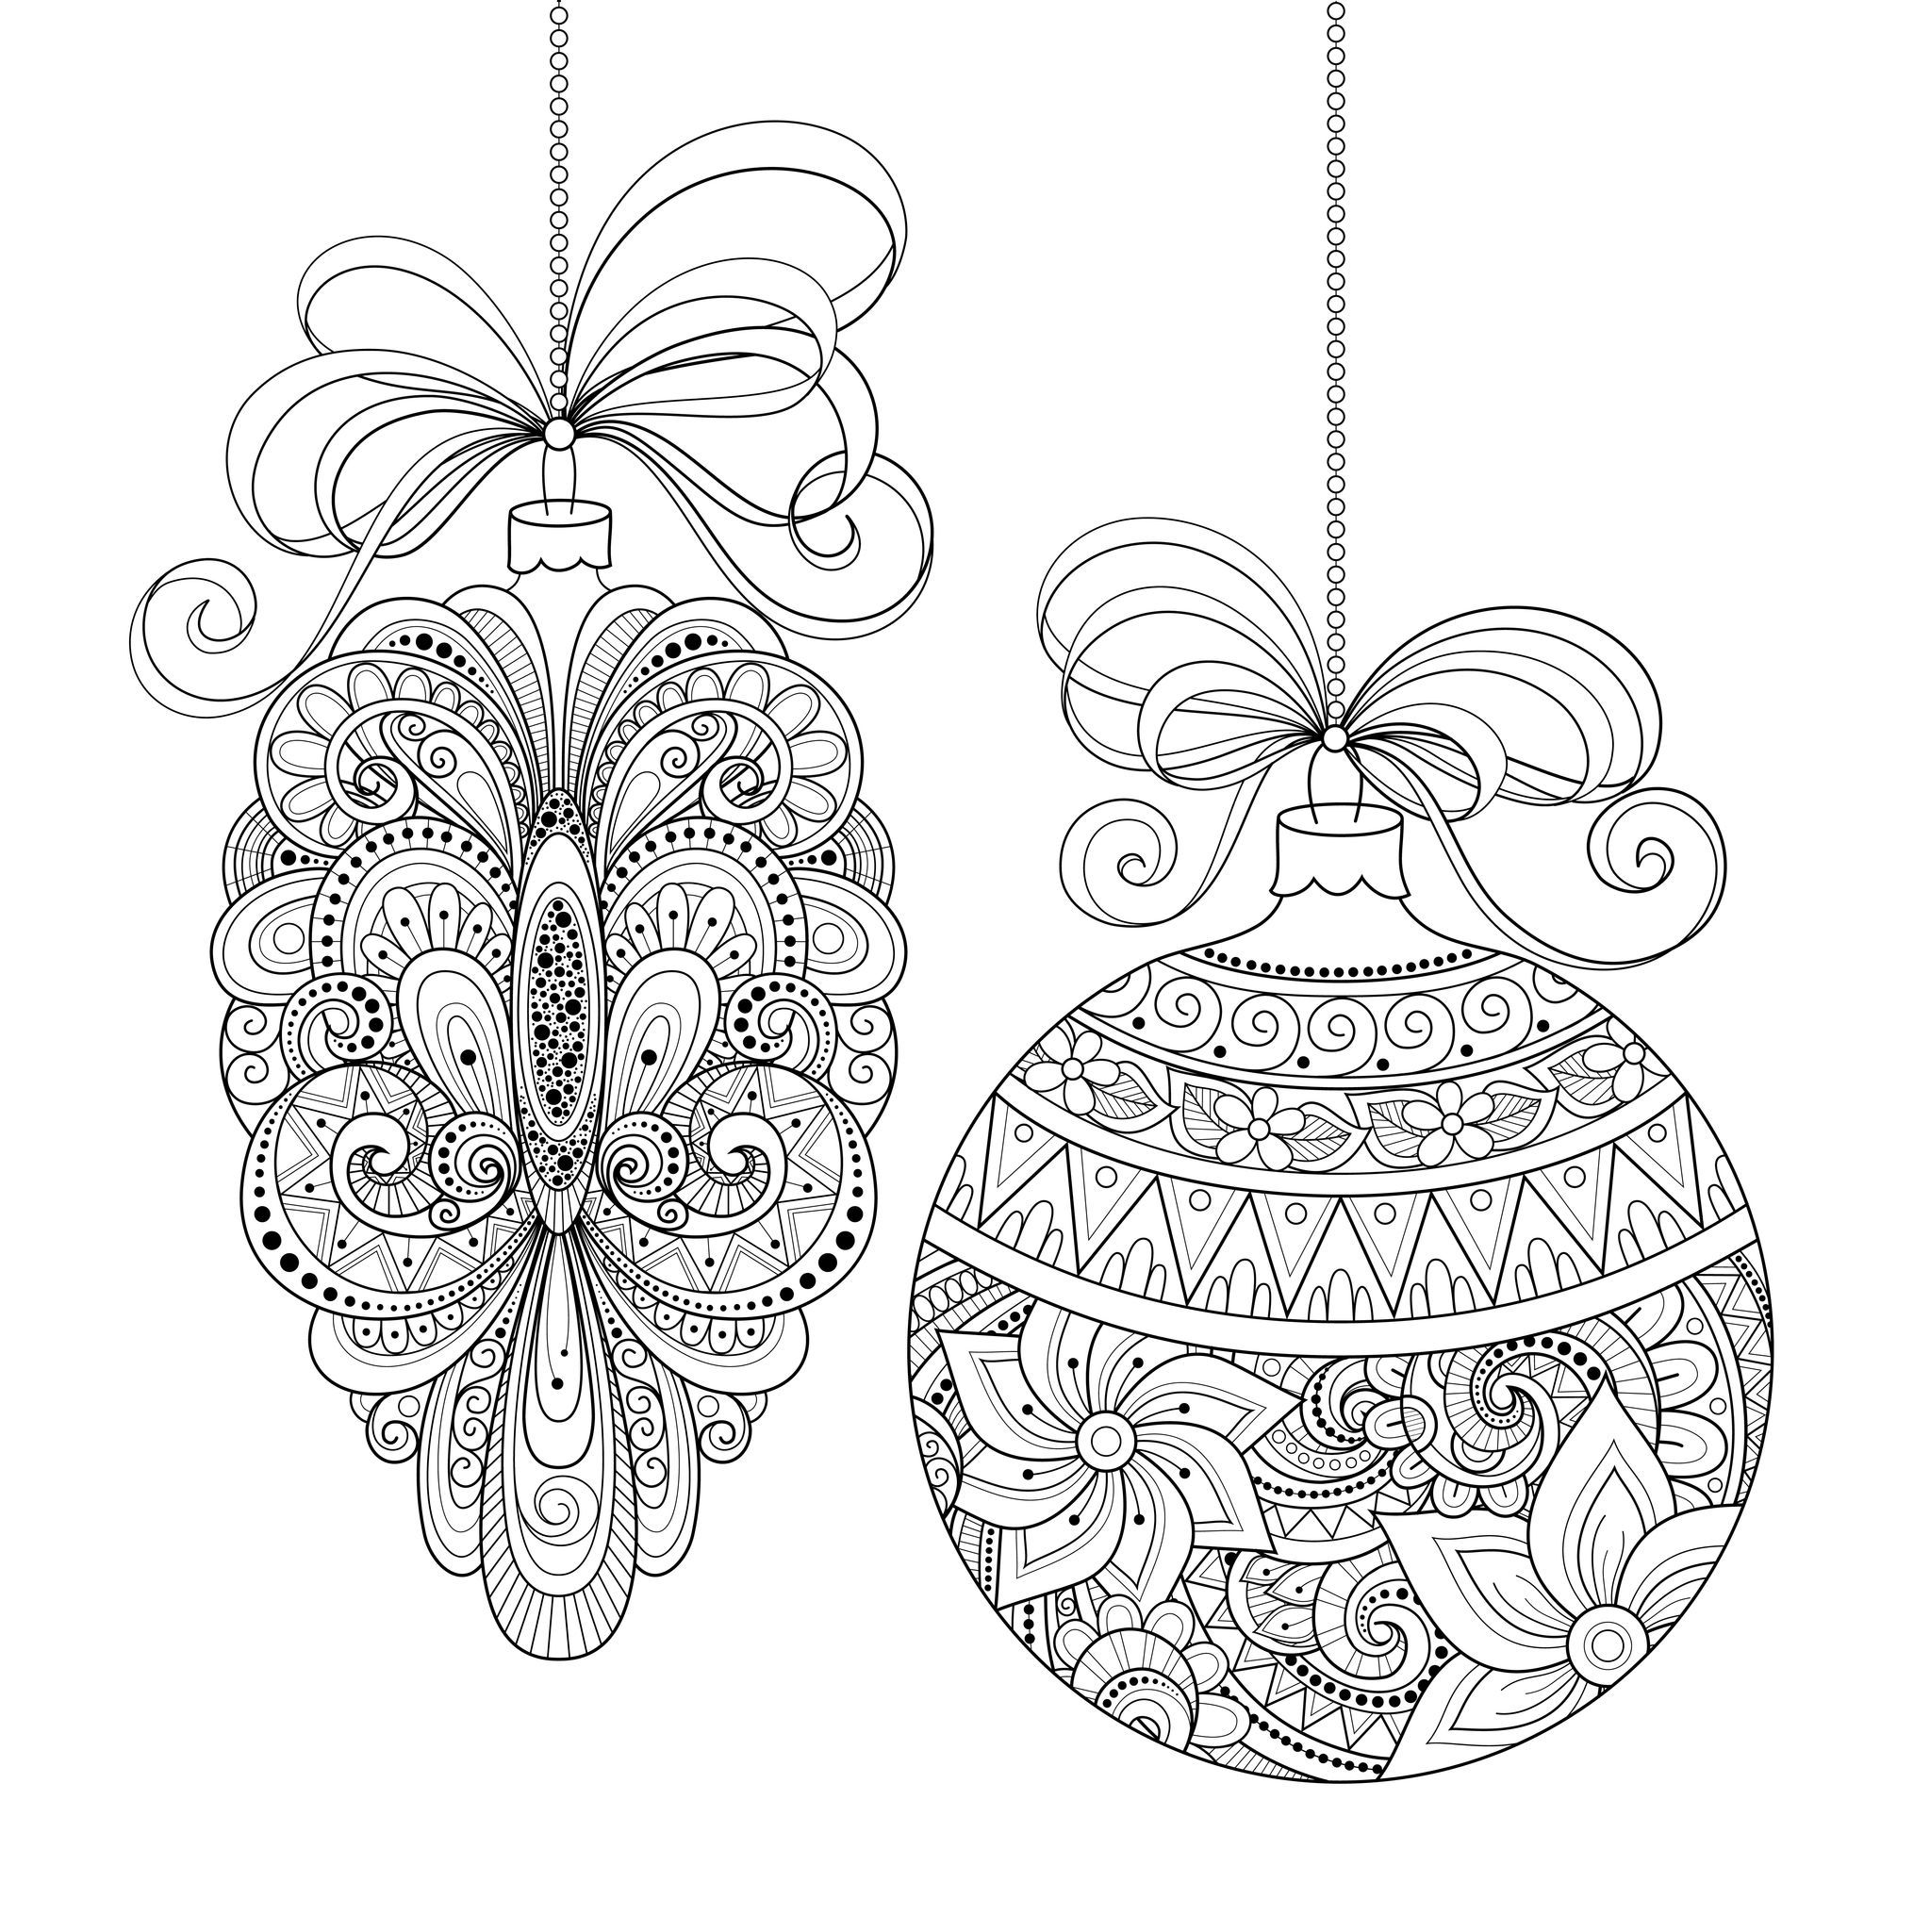 Pinterest christmas adult coloring pages - Adult Christmas Ornaments By Irinarivoruchko Coloring Pages Printable And Coloring Book To Print For Free Find More Coloring Pages Online For Kids And